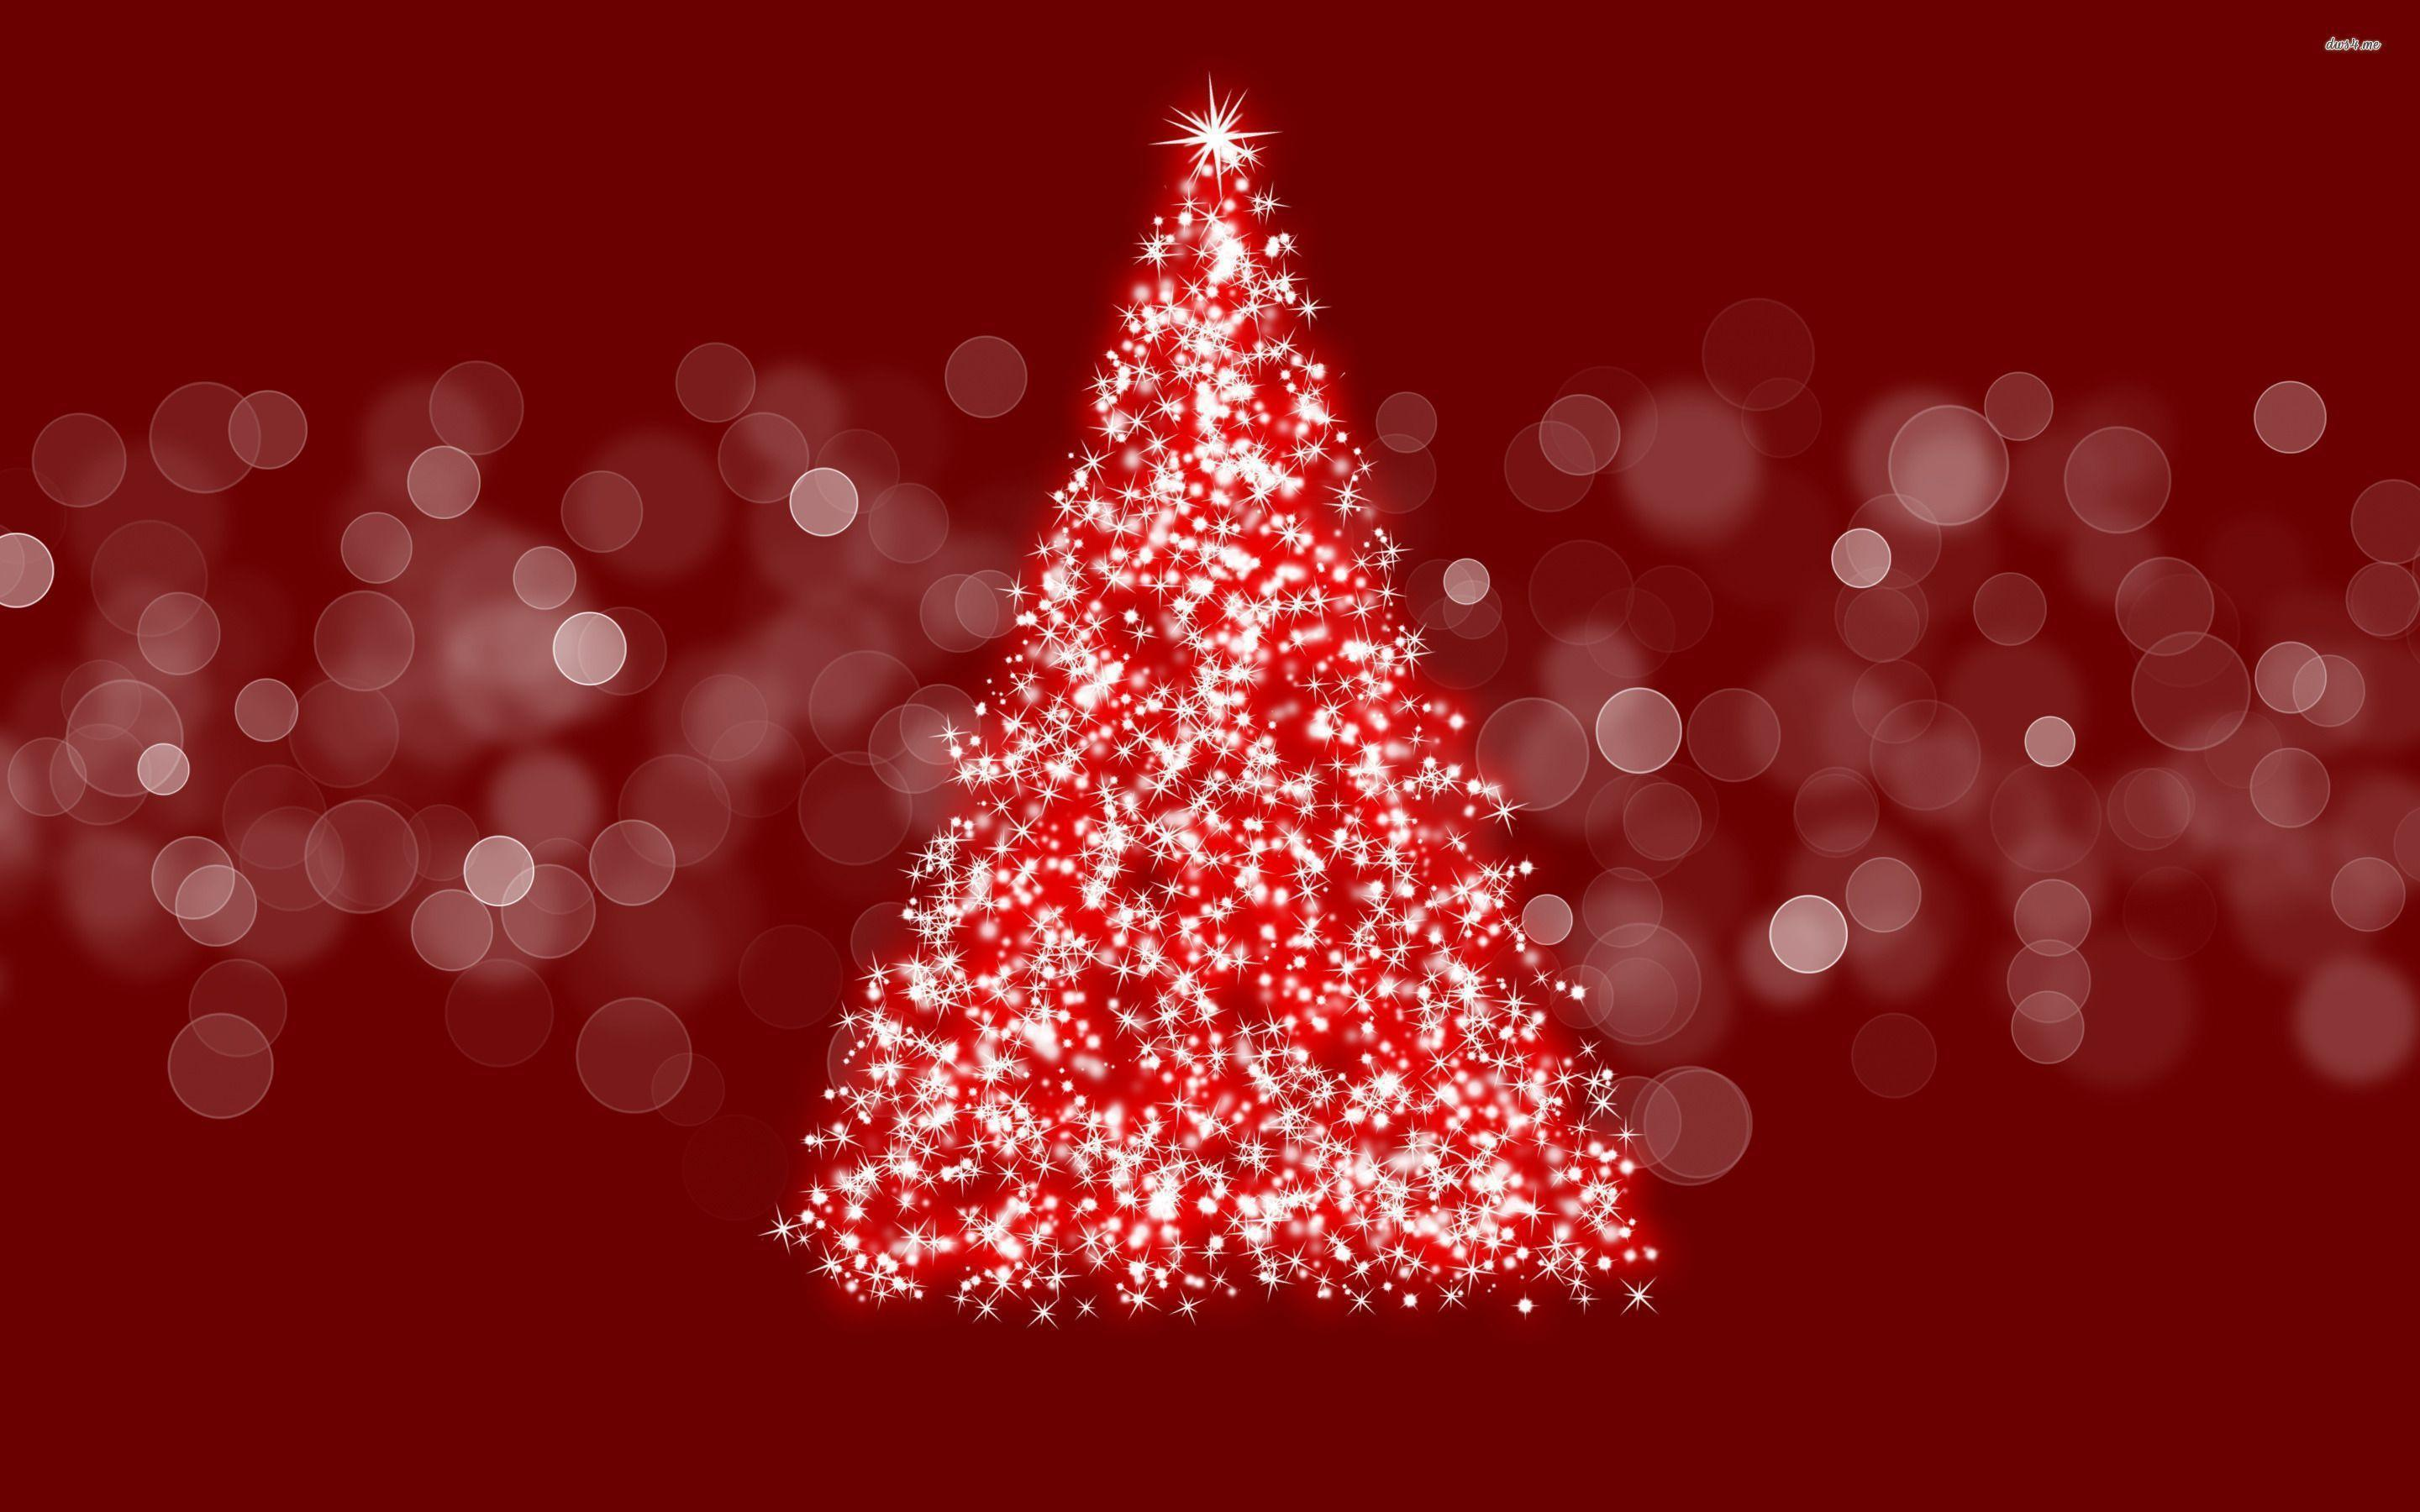 Wallpapers Christmas Tree - Wallpaper Cave